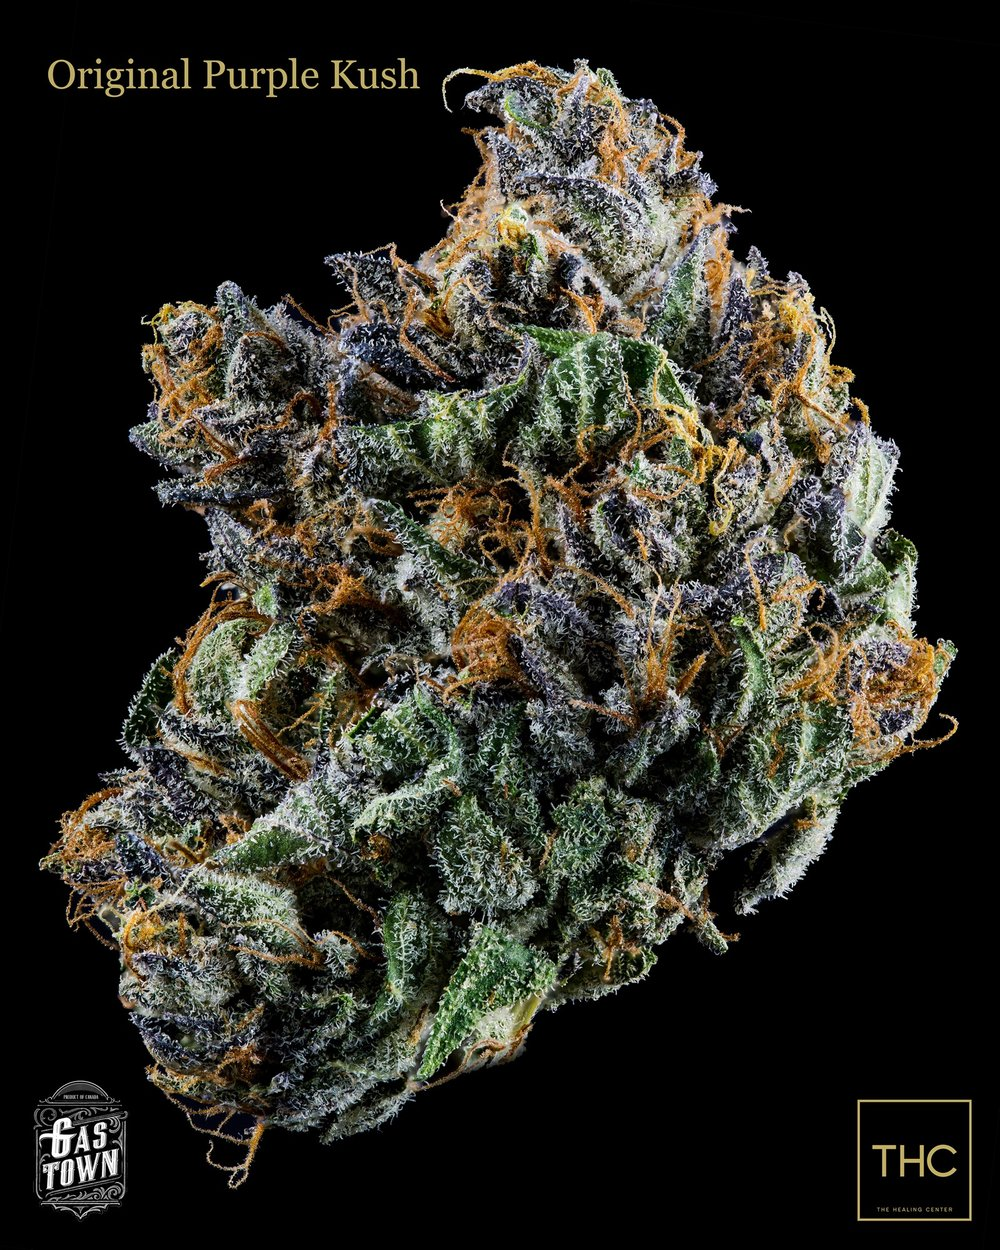 Original Purple Kush Gastown THC.jpg